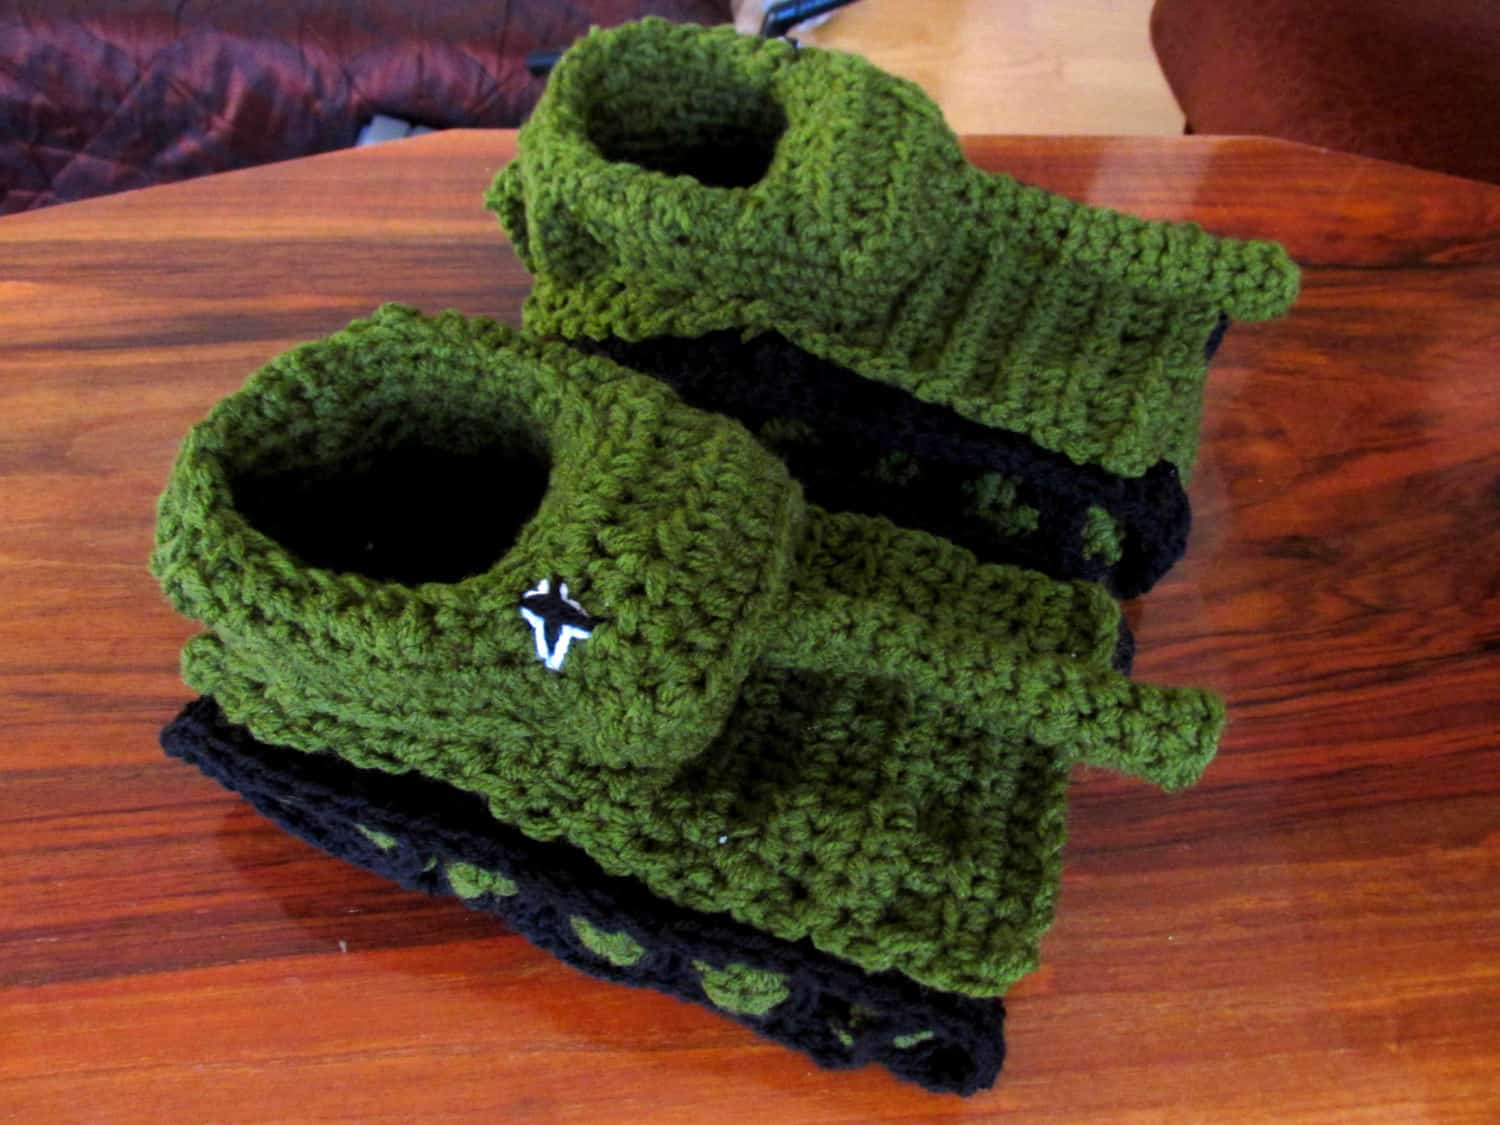 Knitting Pattern For Army Tank Slippers : Paintcrochet Panzer Tank Crochet Slippers - NoveltyStreet